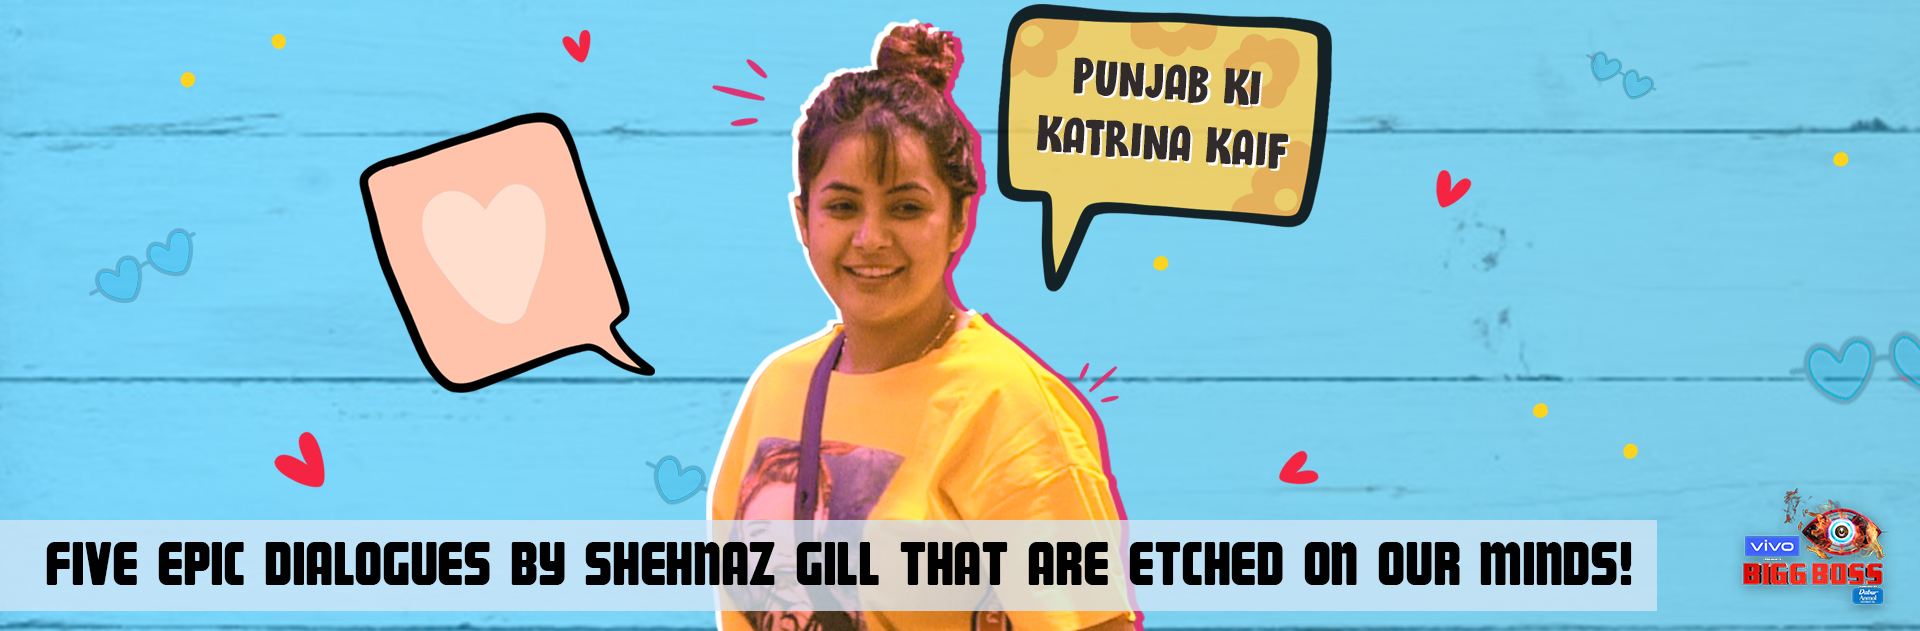 FIVE dialogues by Shehnaz Gill that are etched onto our minds!